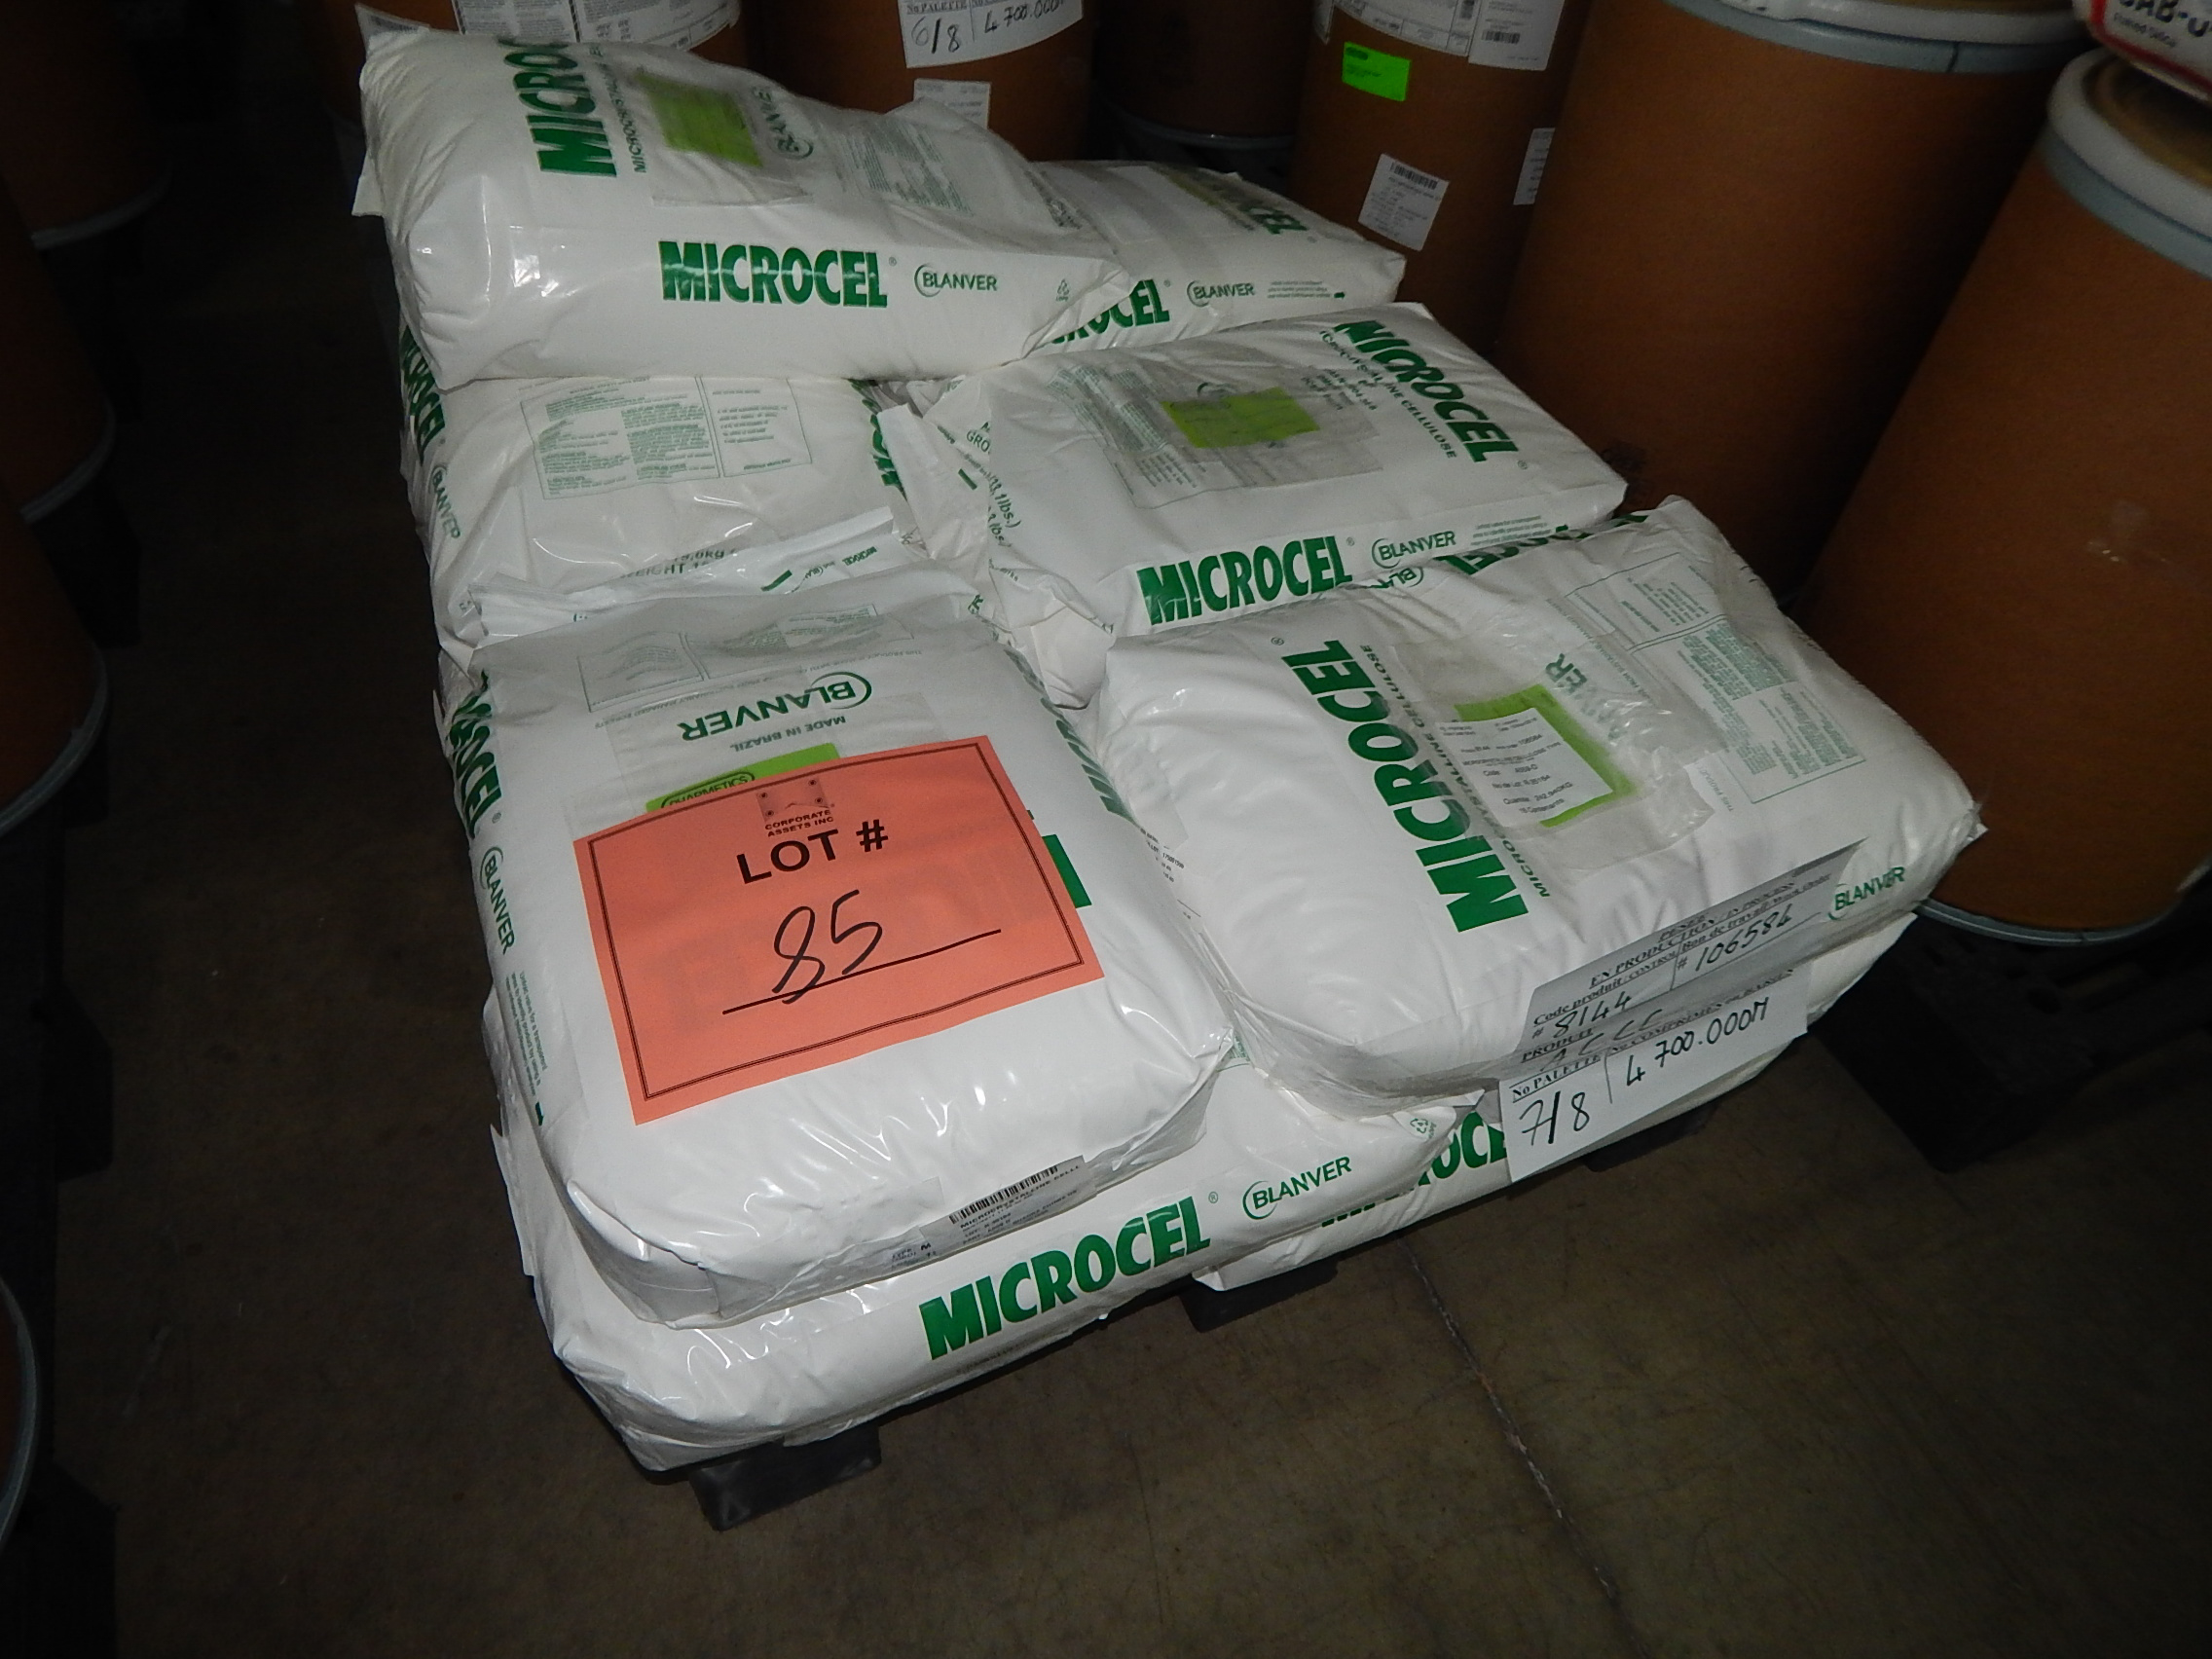 Lot 85 - LOT/ SKID WITH CONTENTS CONSISTING OF 33LBS BAGS OF MICROCRYSTALLINE